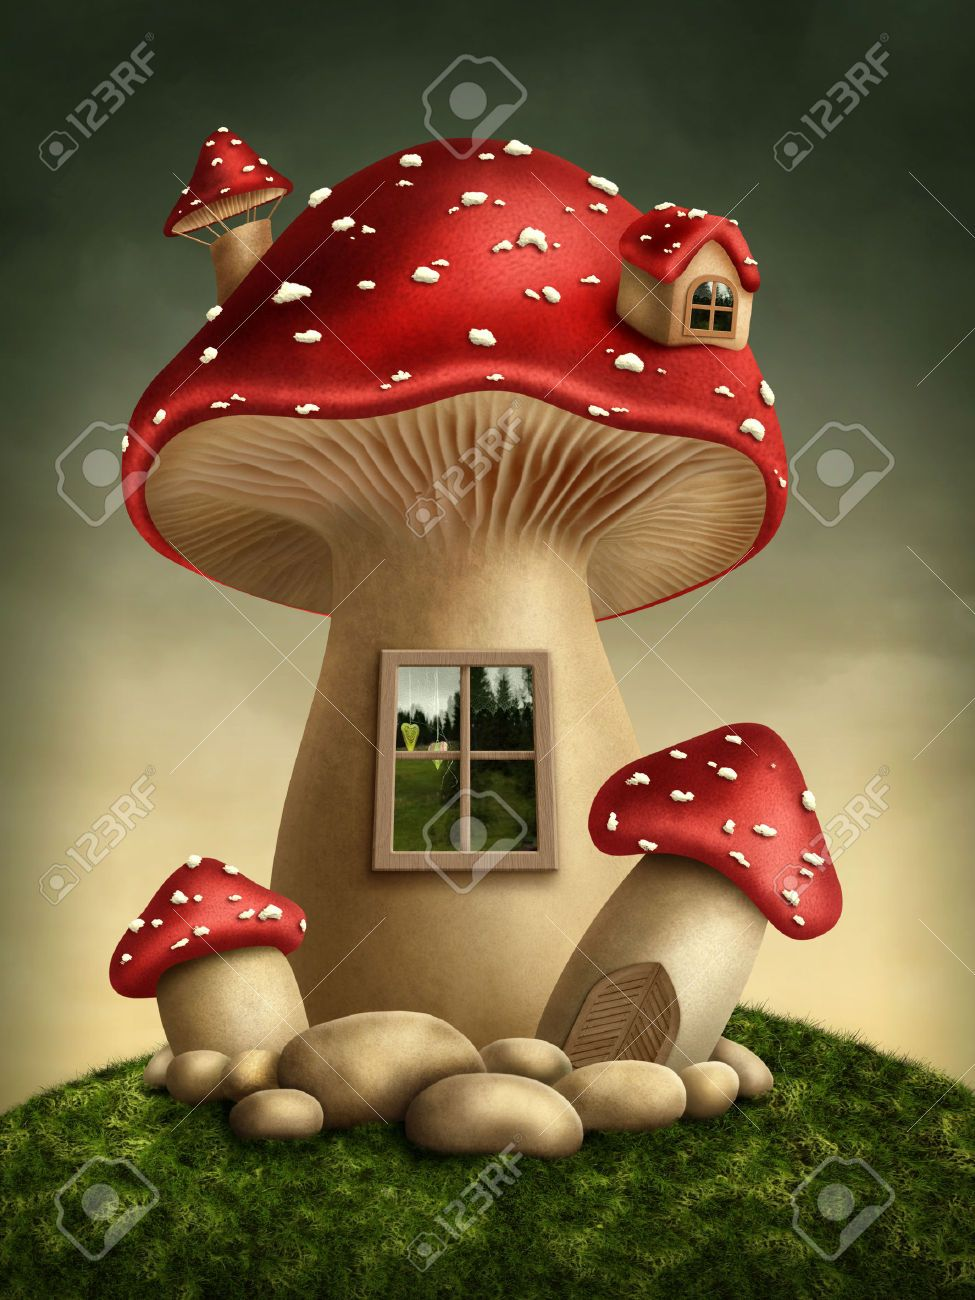 Fantasy Mushroom House In The Forest Stock Photo, Picture And Royalty Free Image. Pic 32091163.